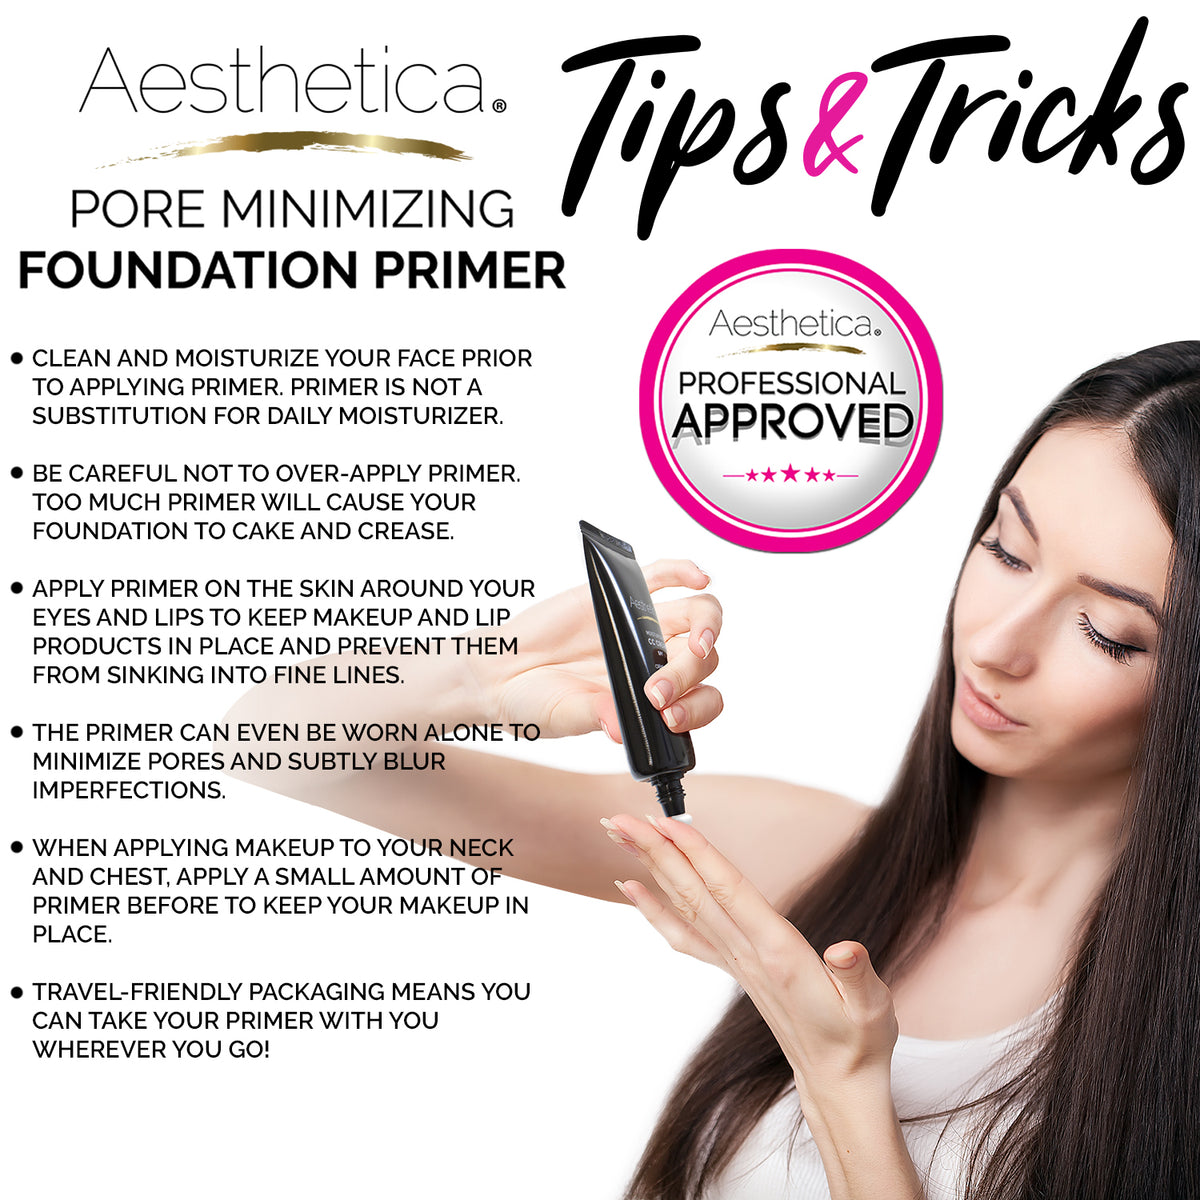 Aesthetica Pore Minimizing Foundation Primer